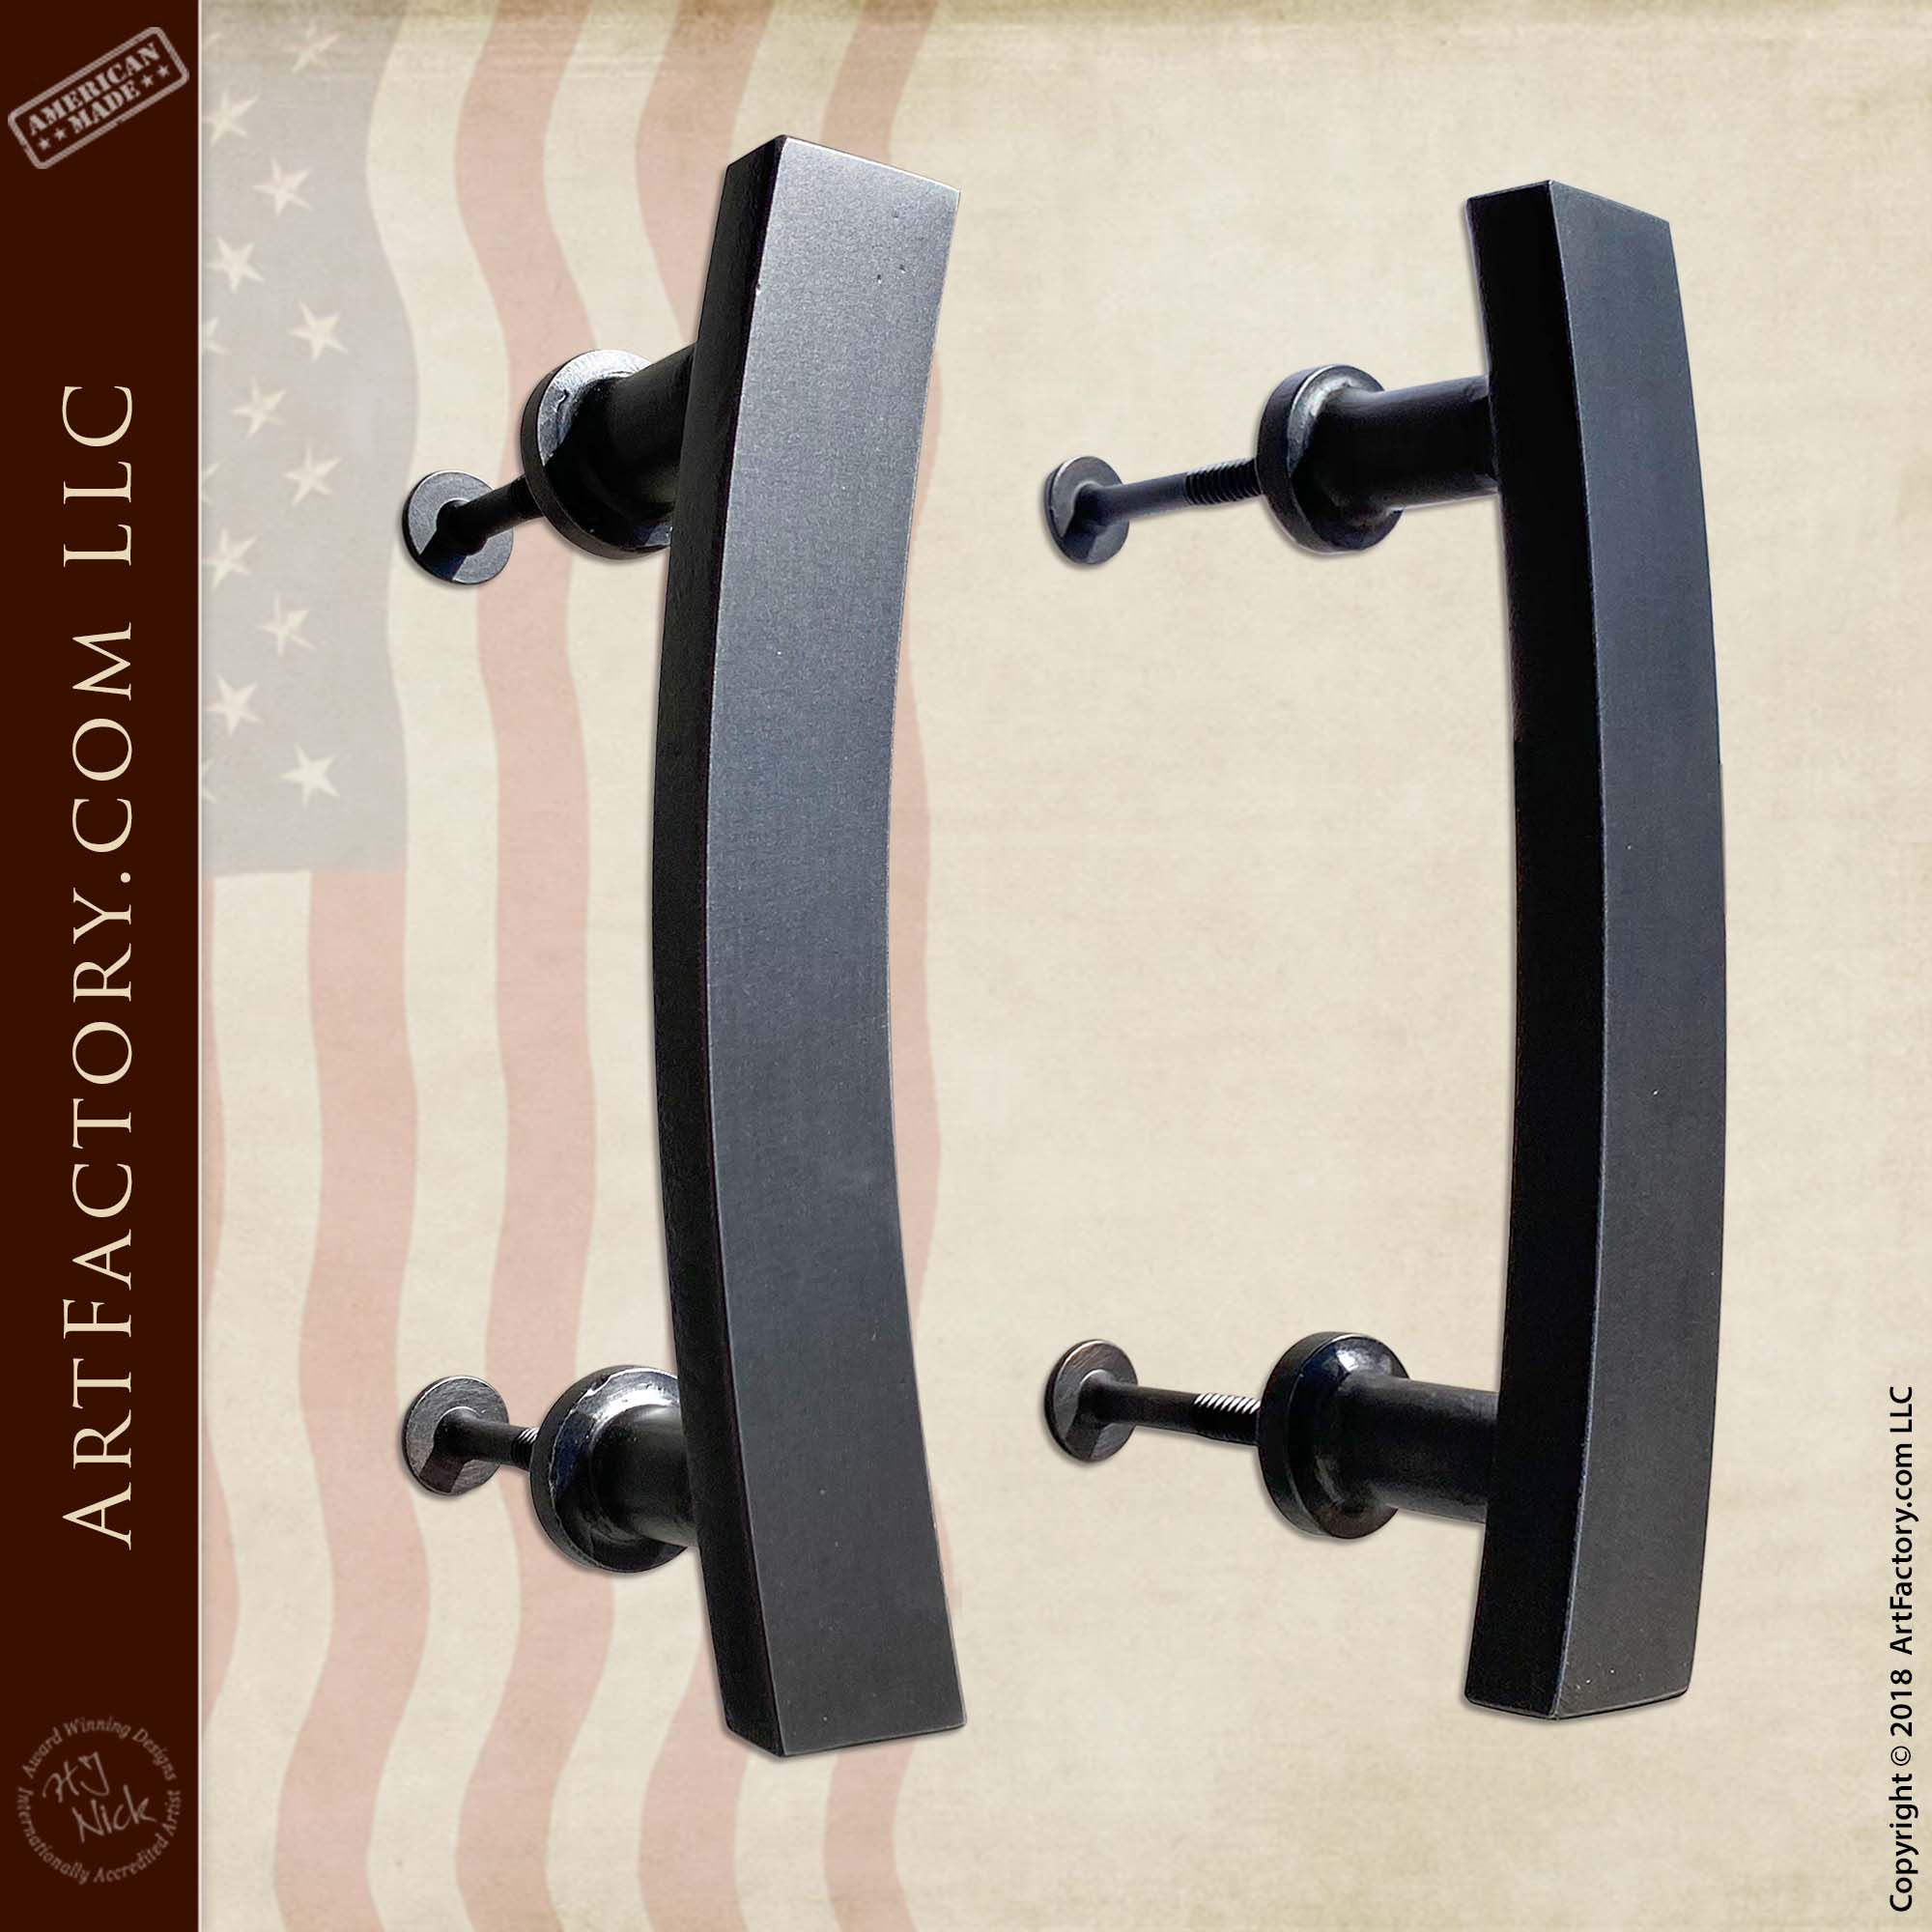 Modern-Art-Deco-Interior-Door-Handles-2 copy